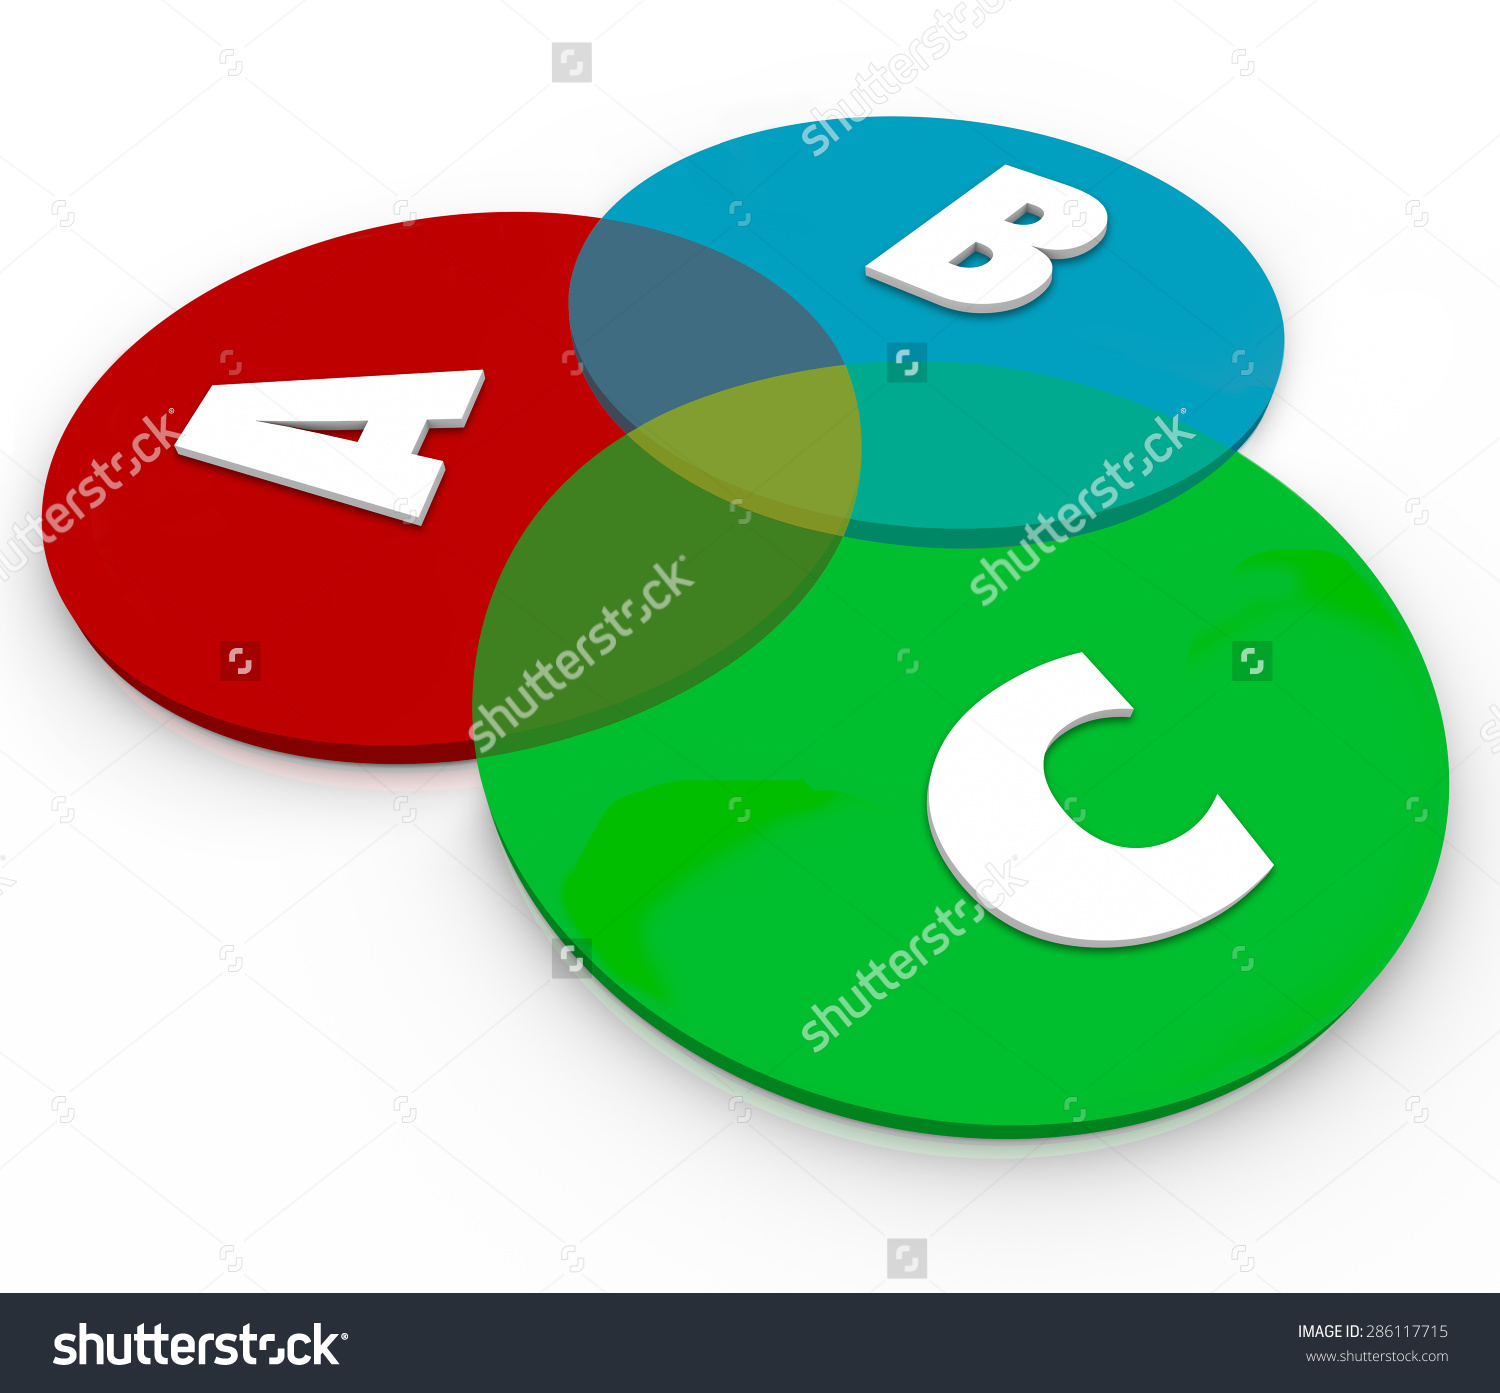 Abc Letters On Venn Diagram Overlapping Stock Illustration ... graphic royalty free stock